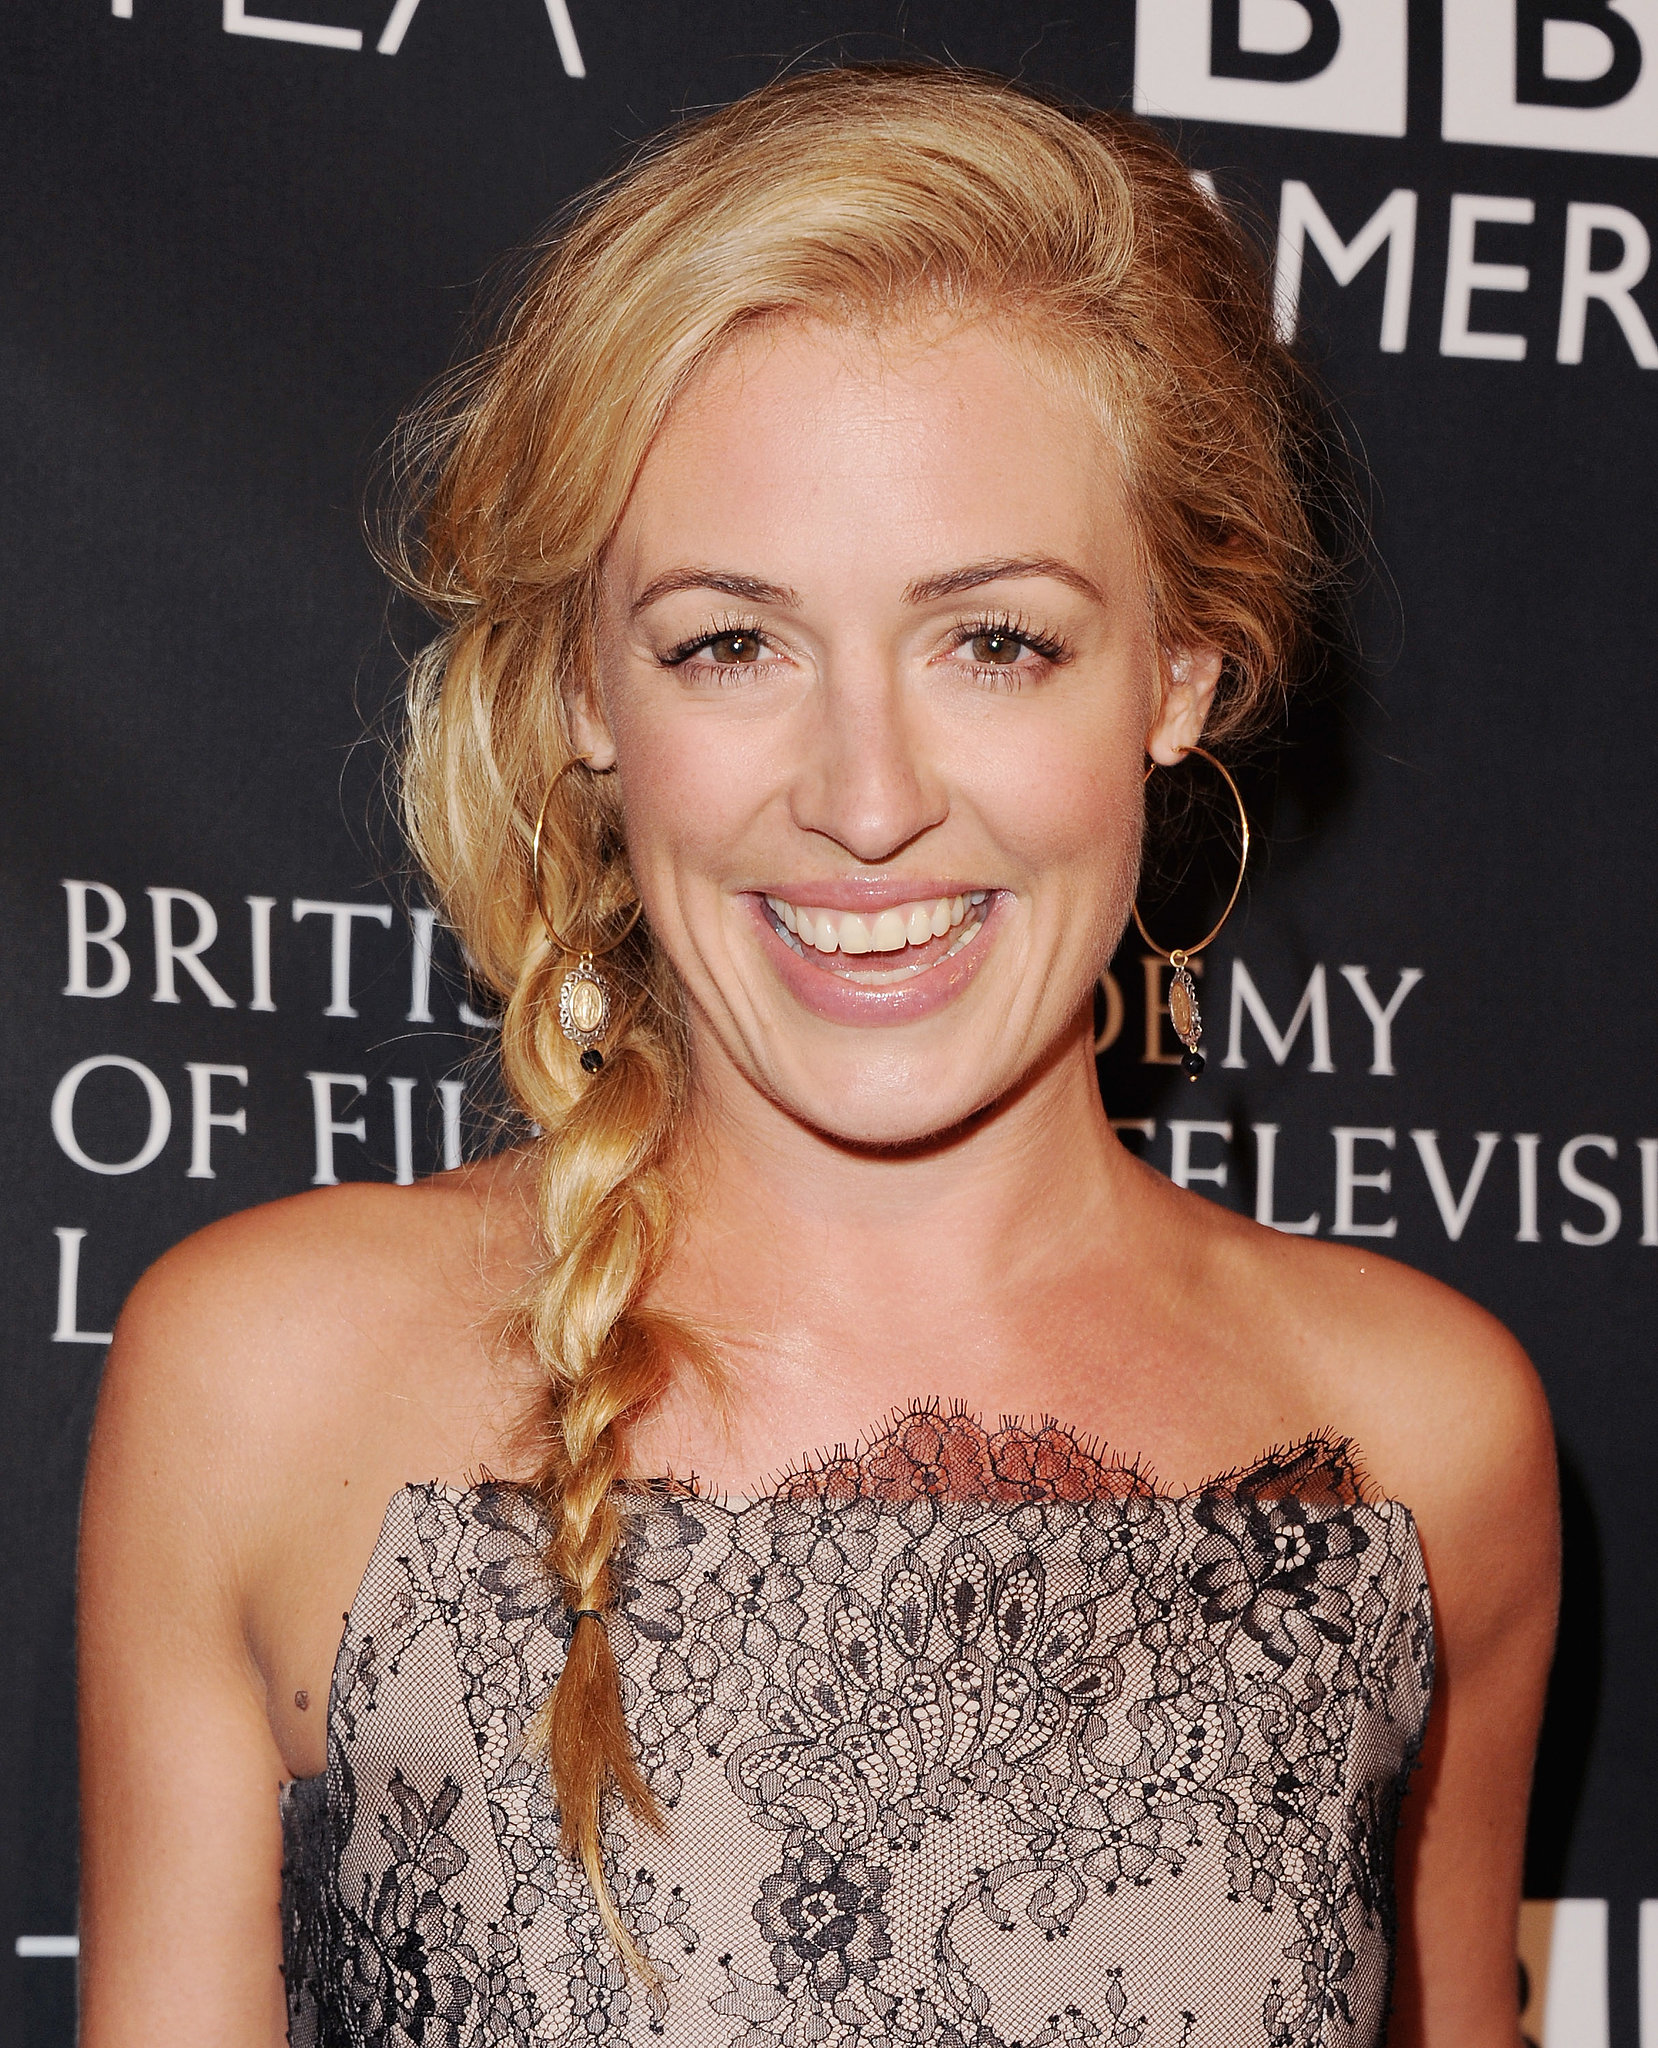 Cat Deeley kept it casual with a simple side braid at the BAFTA LA TV Tea